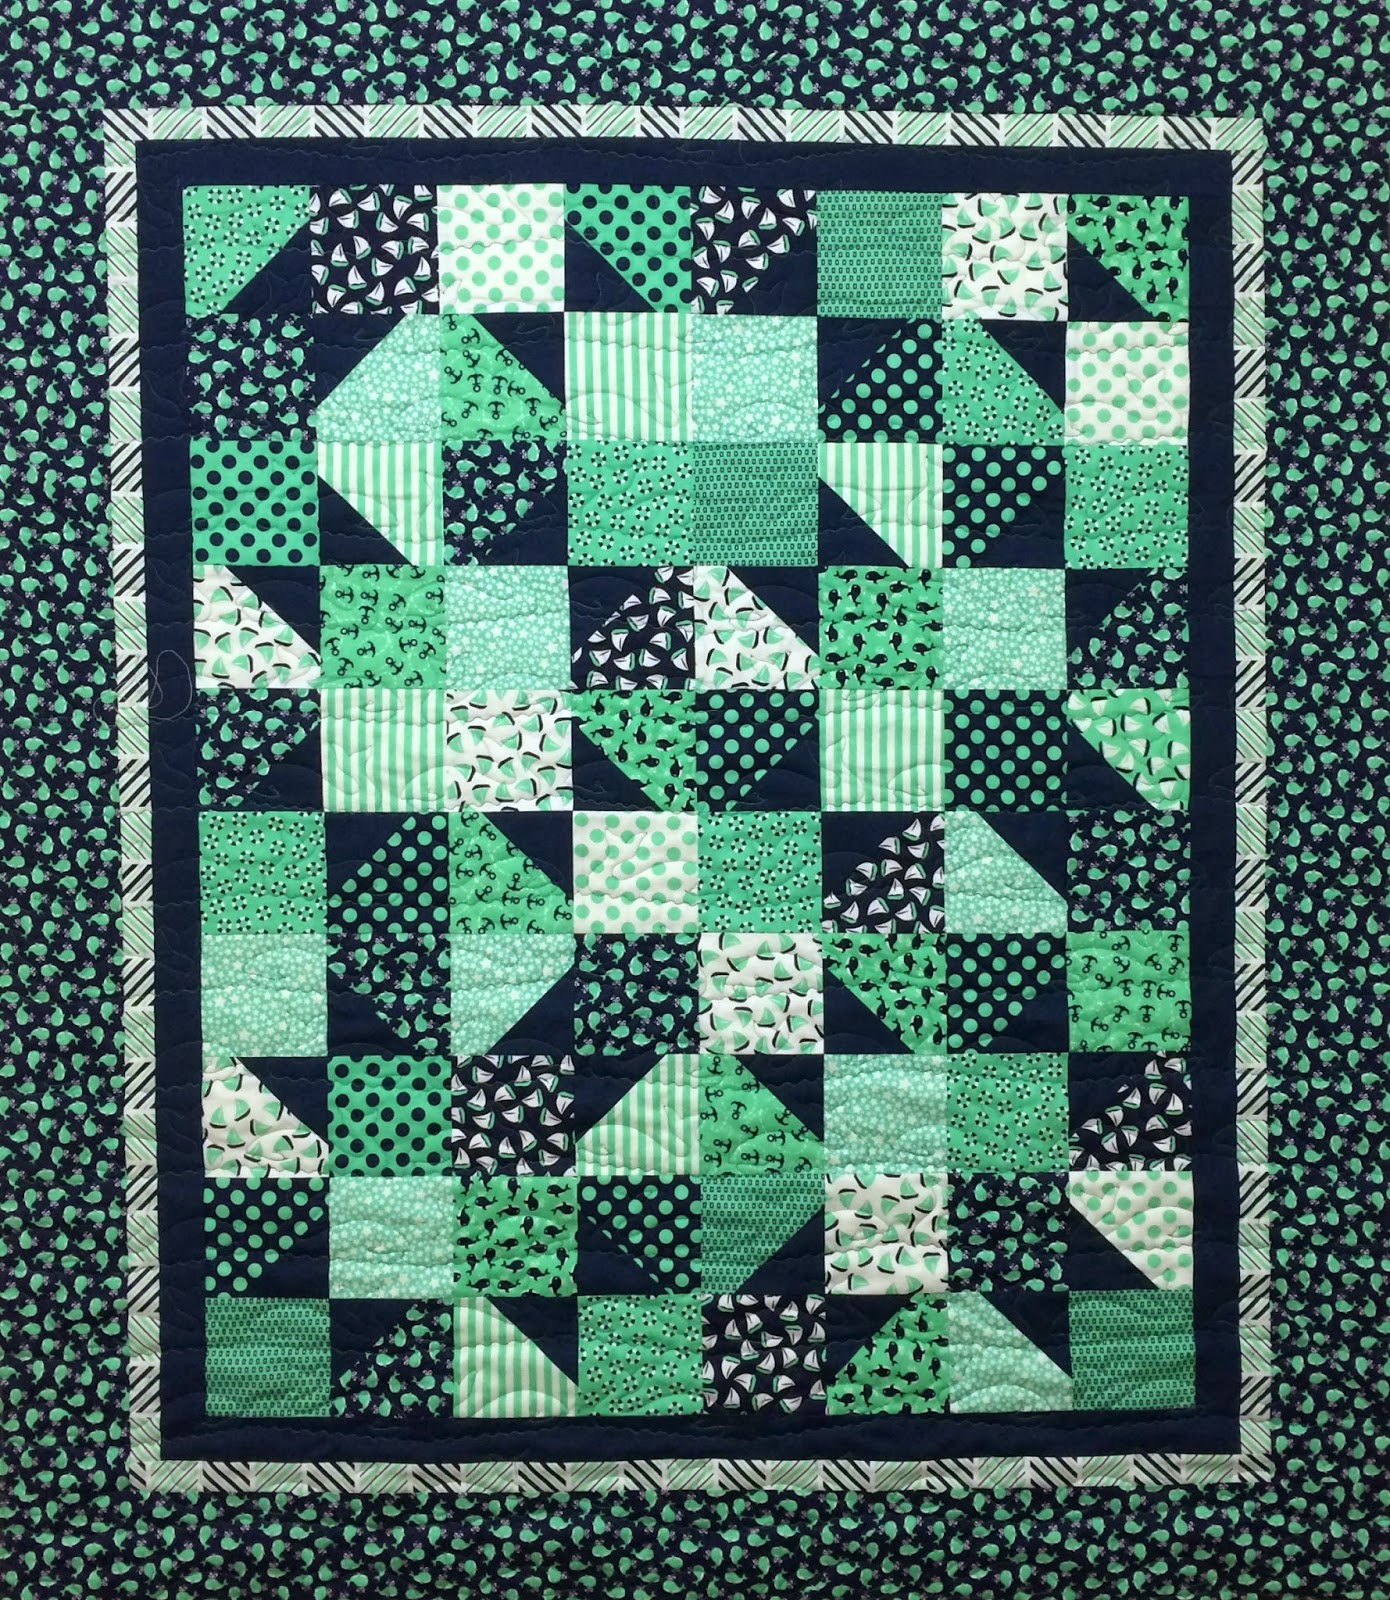 Debra Taylor Baby Quilt with Whales